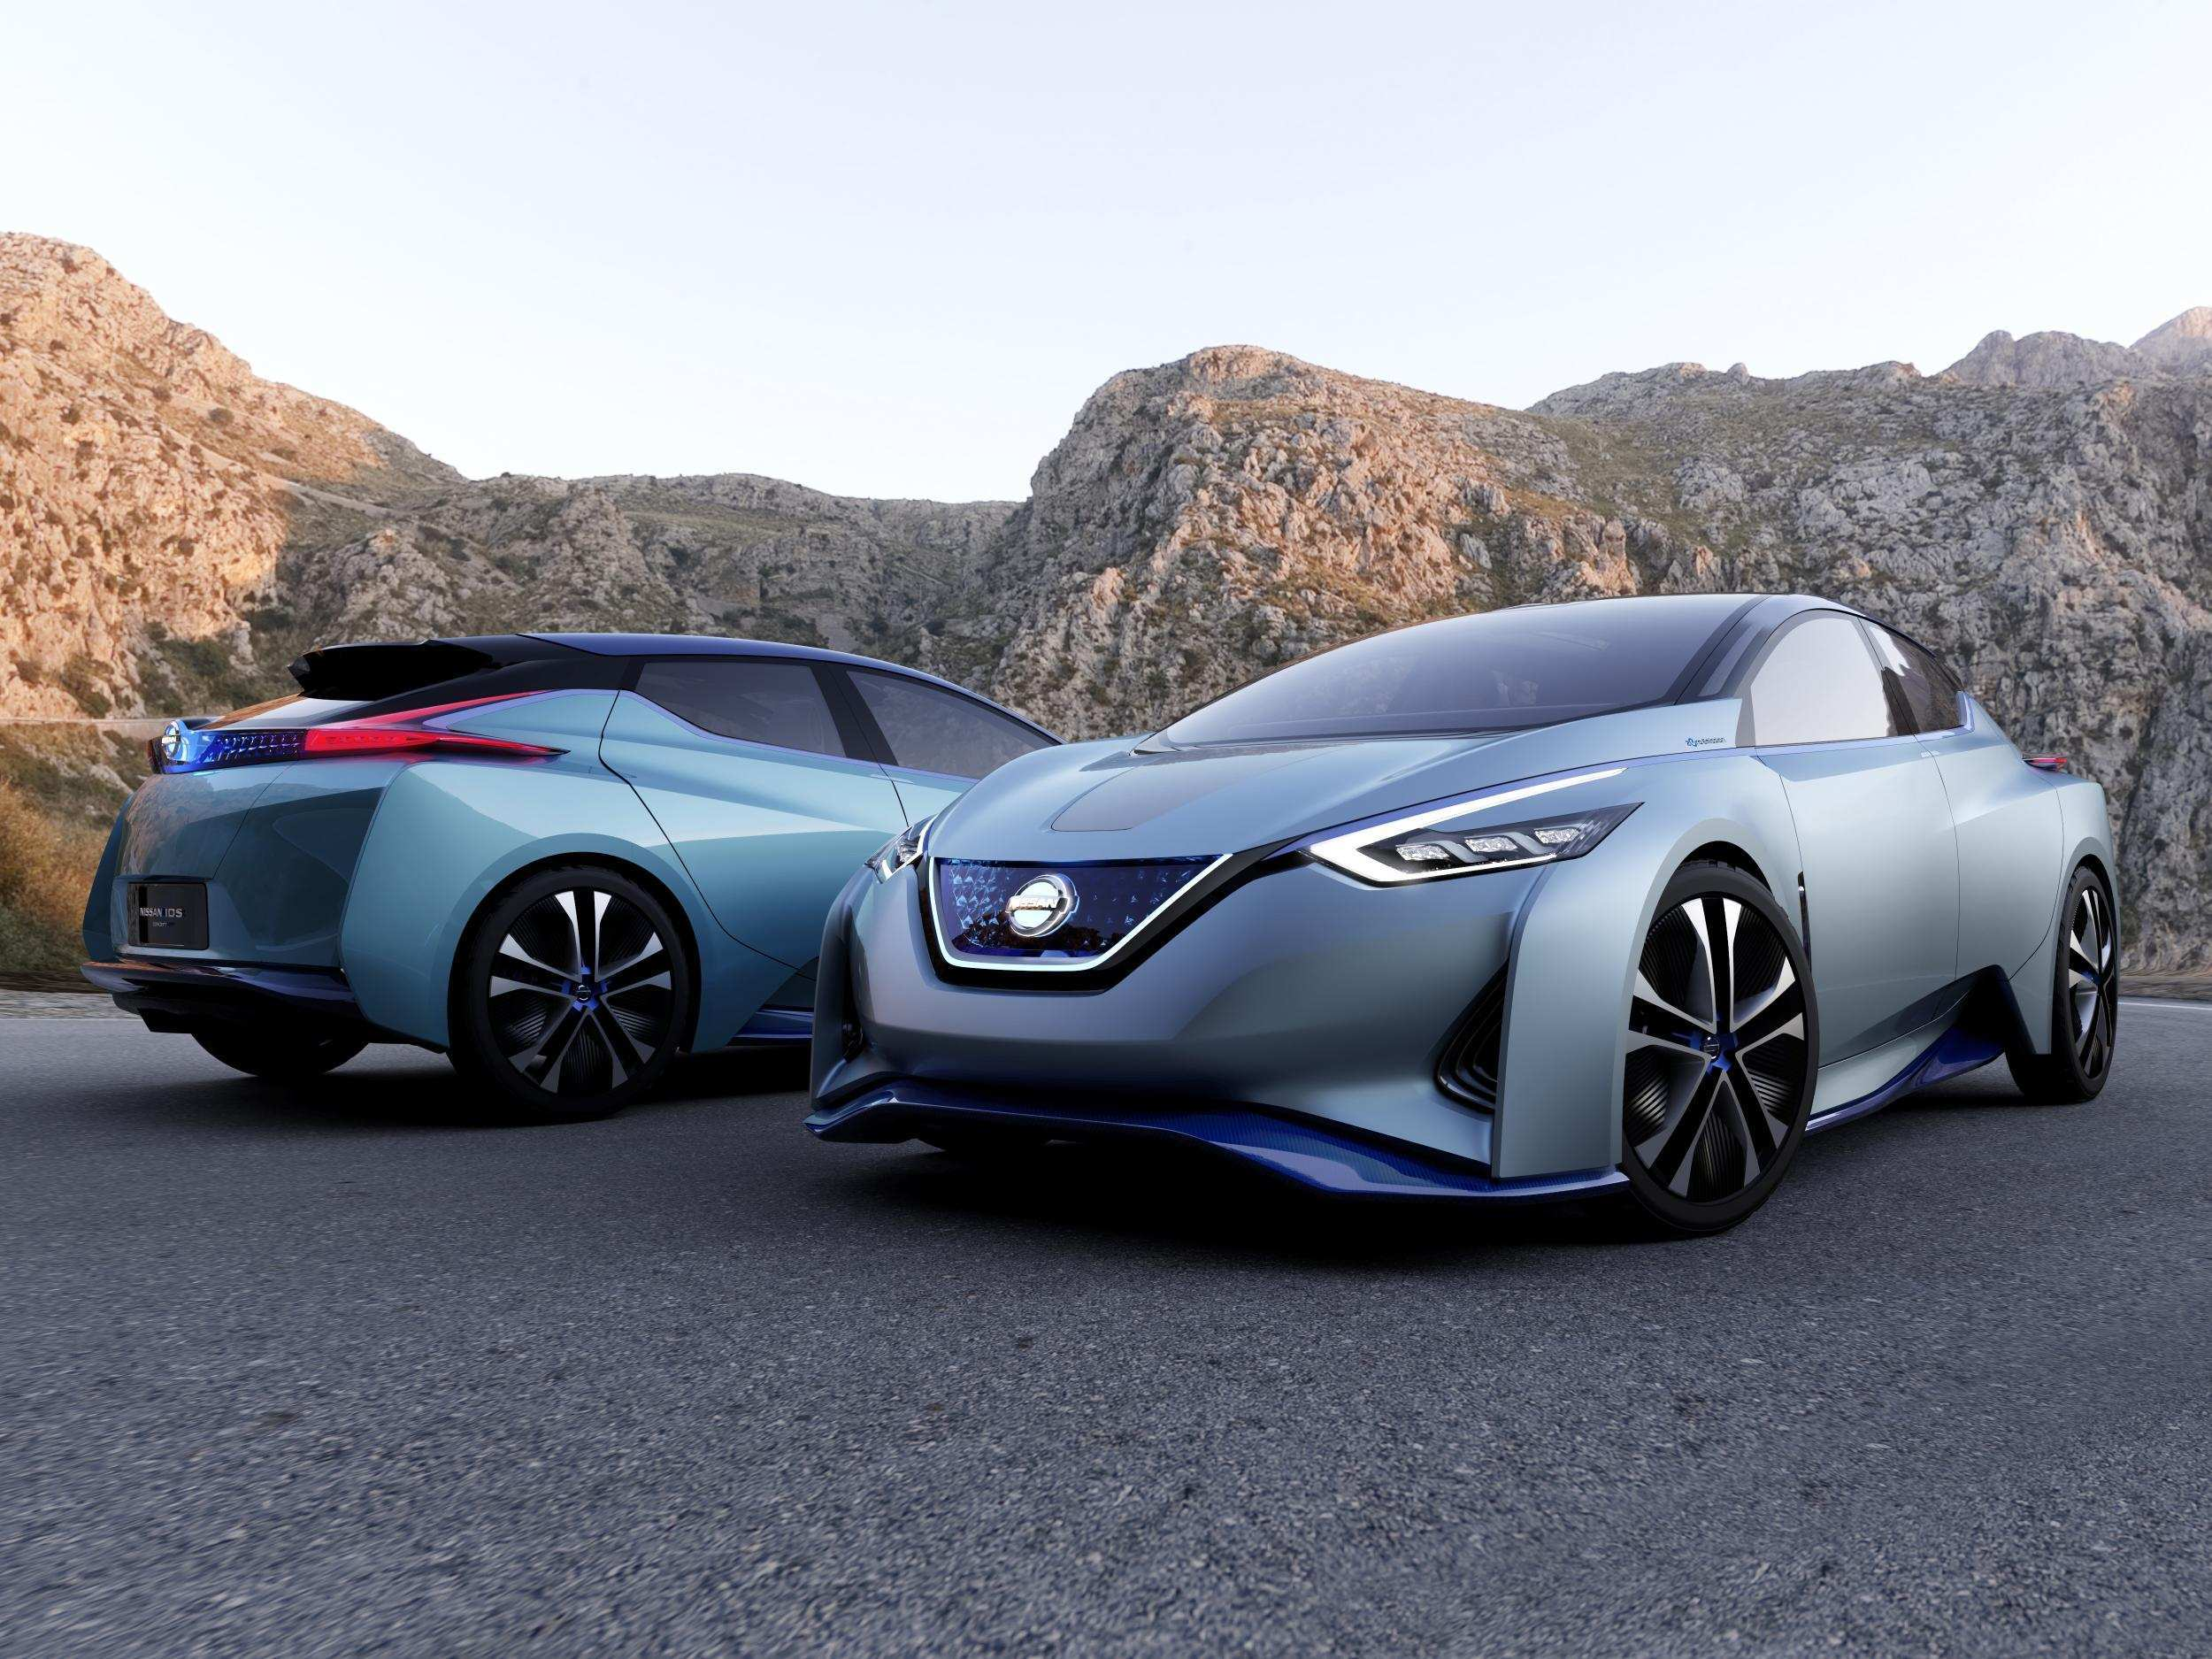 58 All New Nissan Ids 2020 History with Nissan Ids 2020